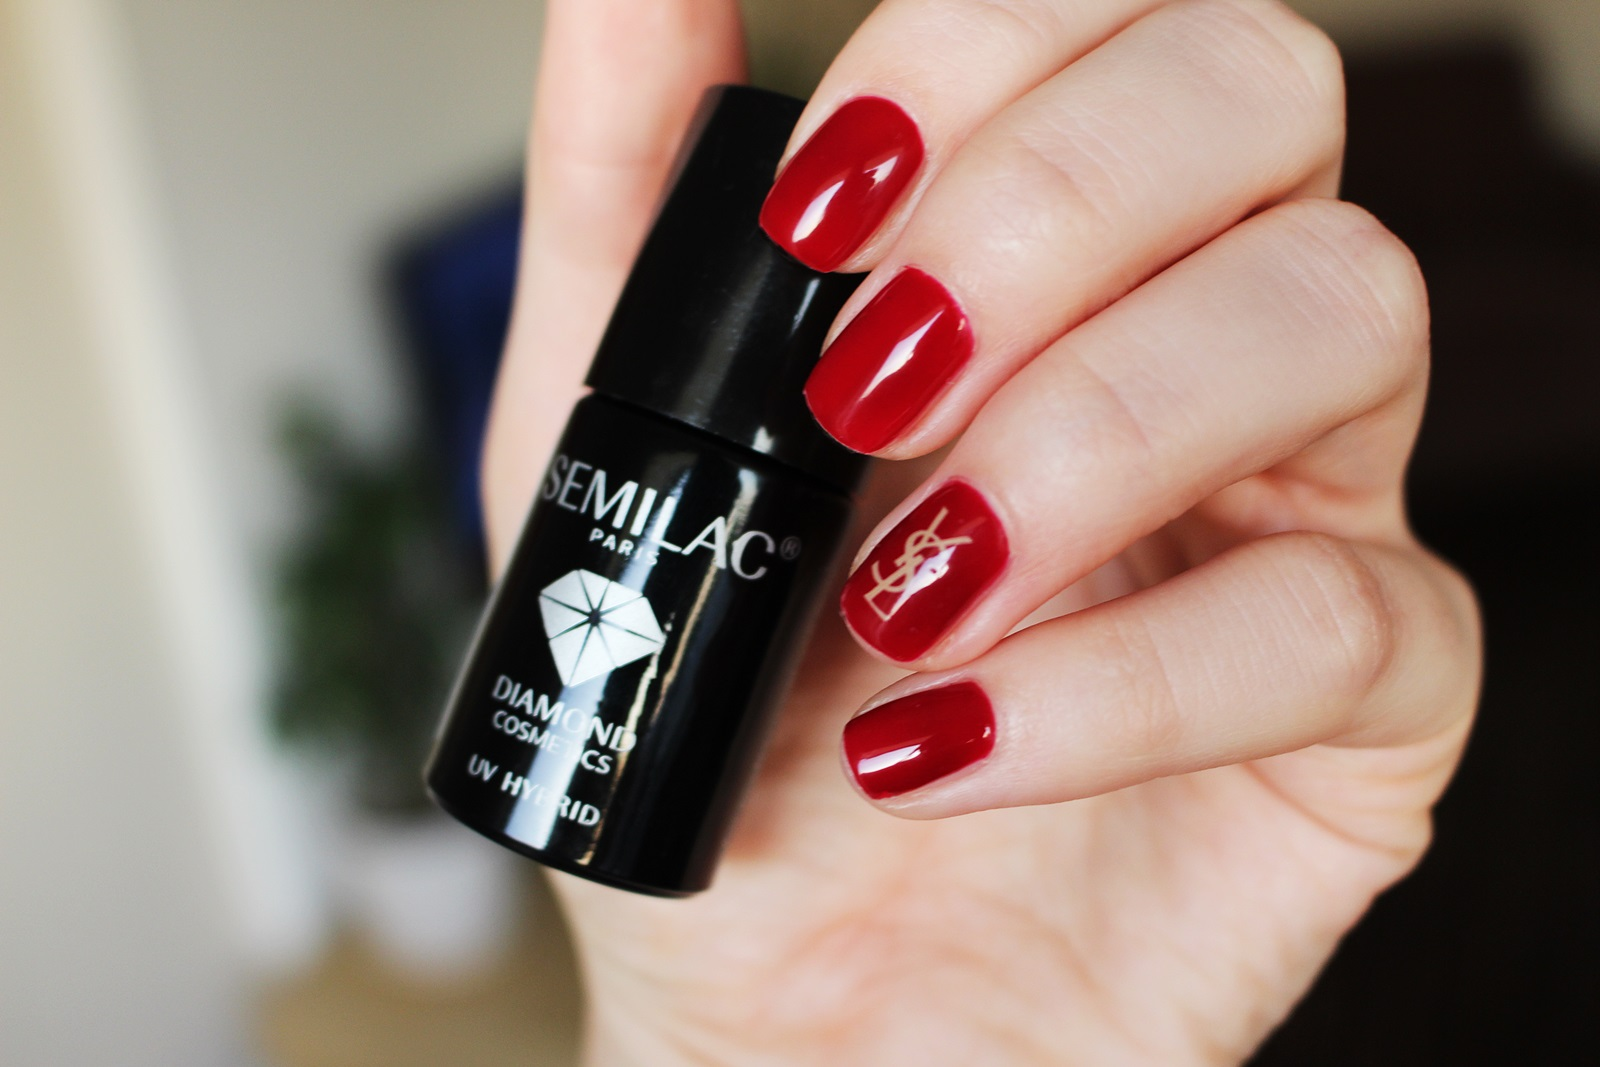 Lakier hybrydowy Semilac 071 Deep Red YSL nails brand nails red nails sexy classic lady nails gdzie kupic hybrydowe lakiery jaka firma do domu water dectal gucci dior chanel burberry